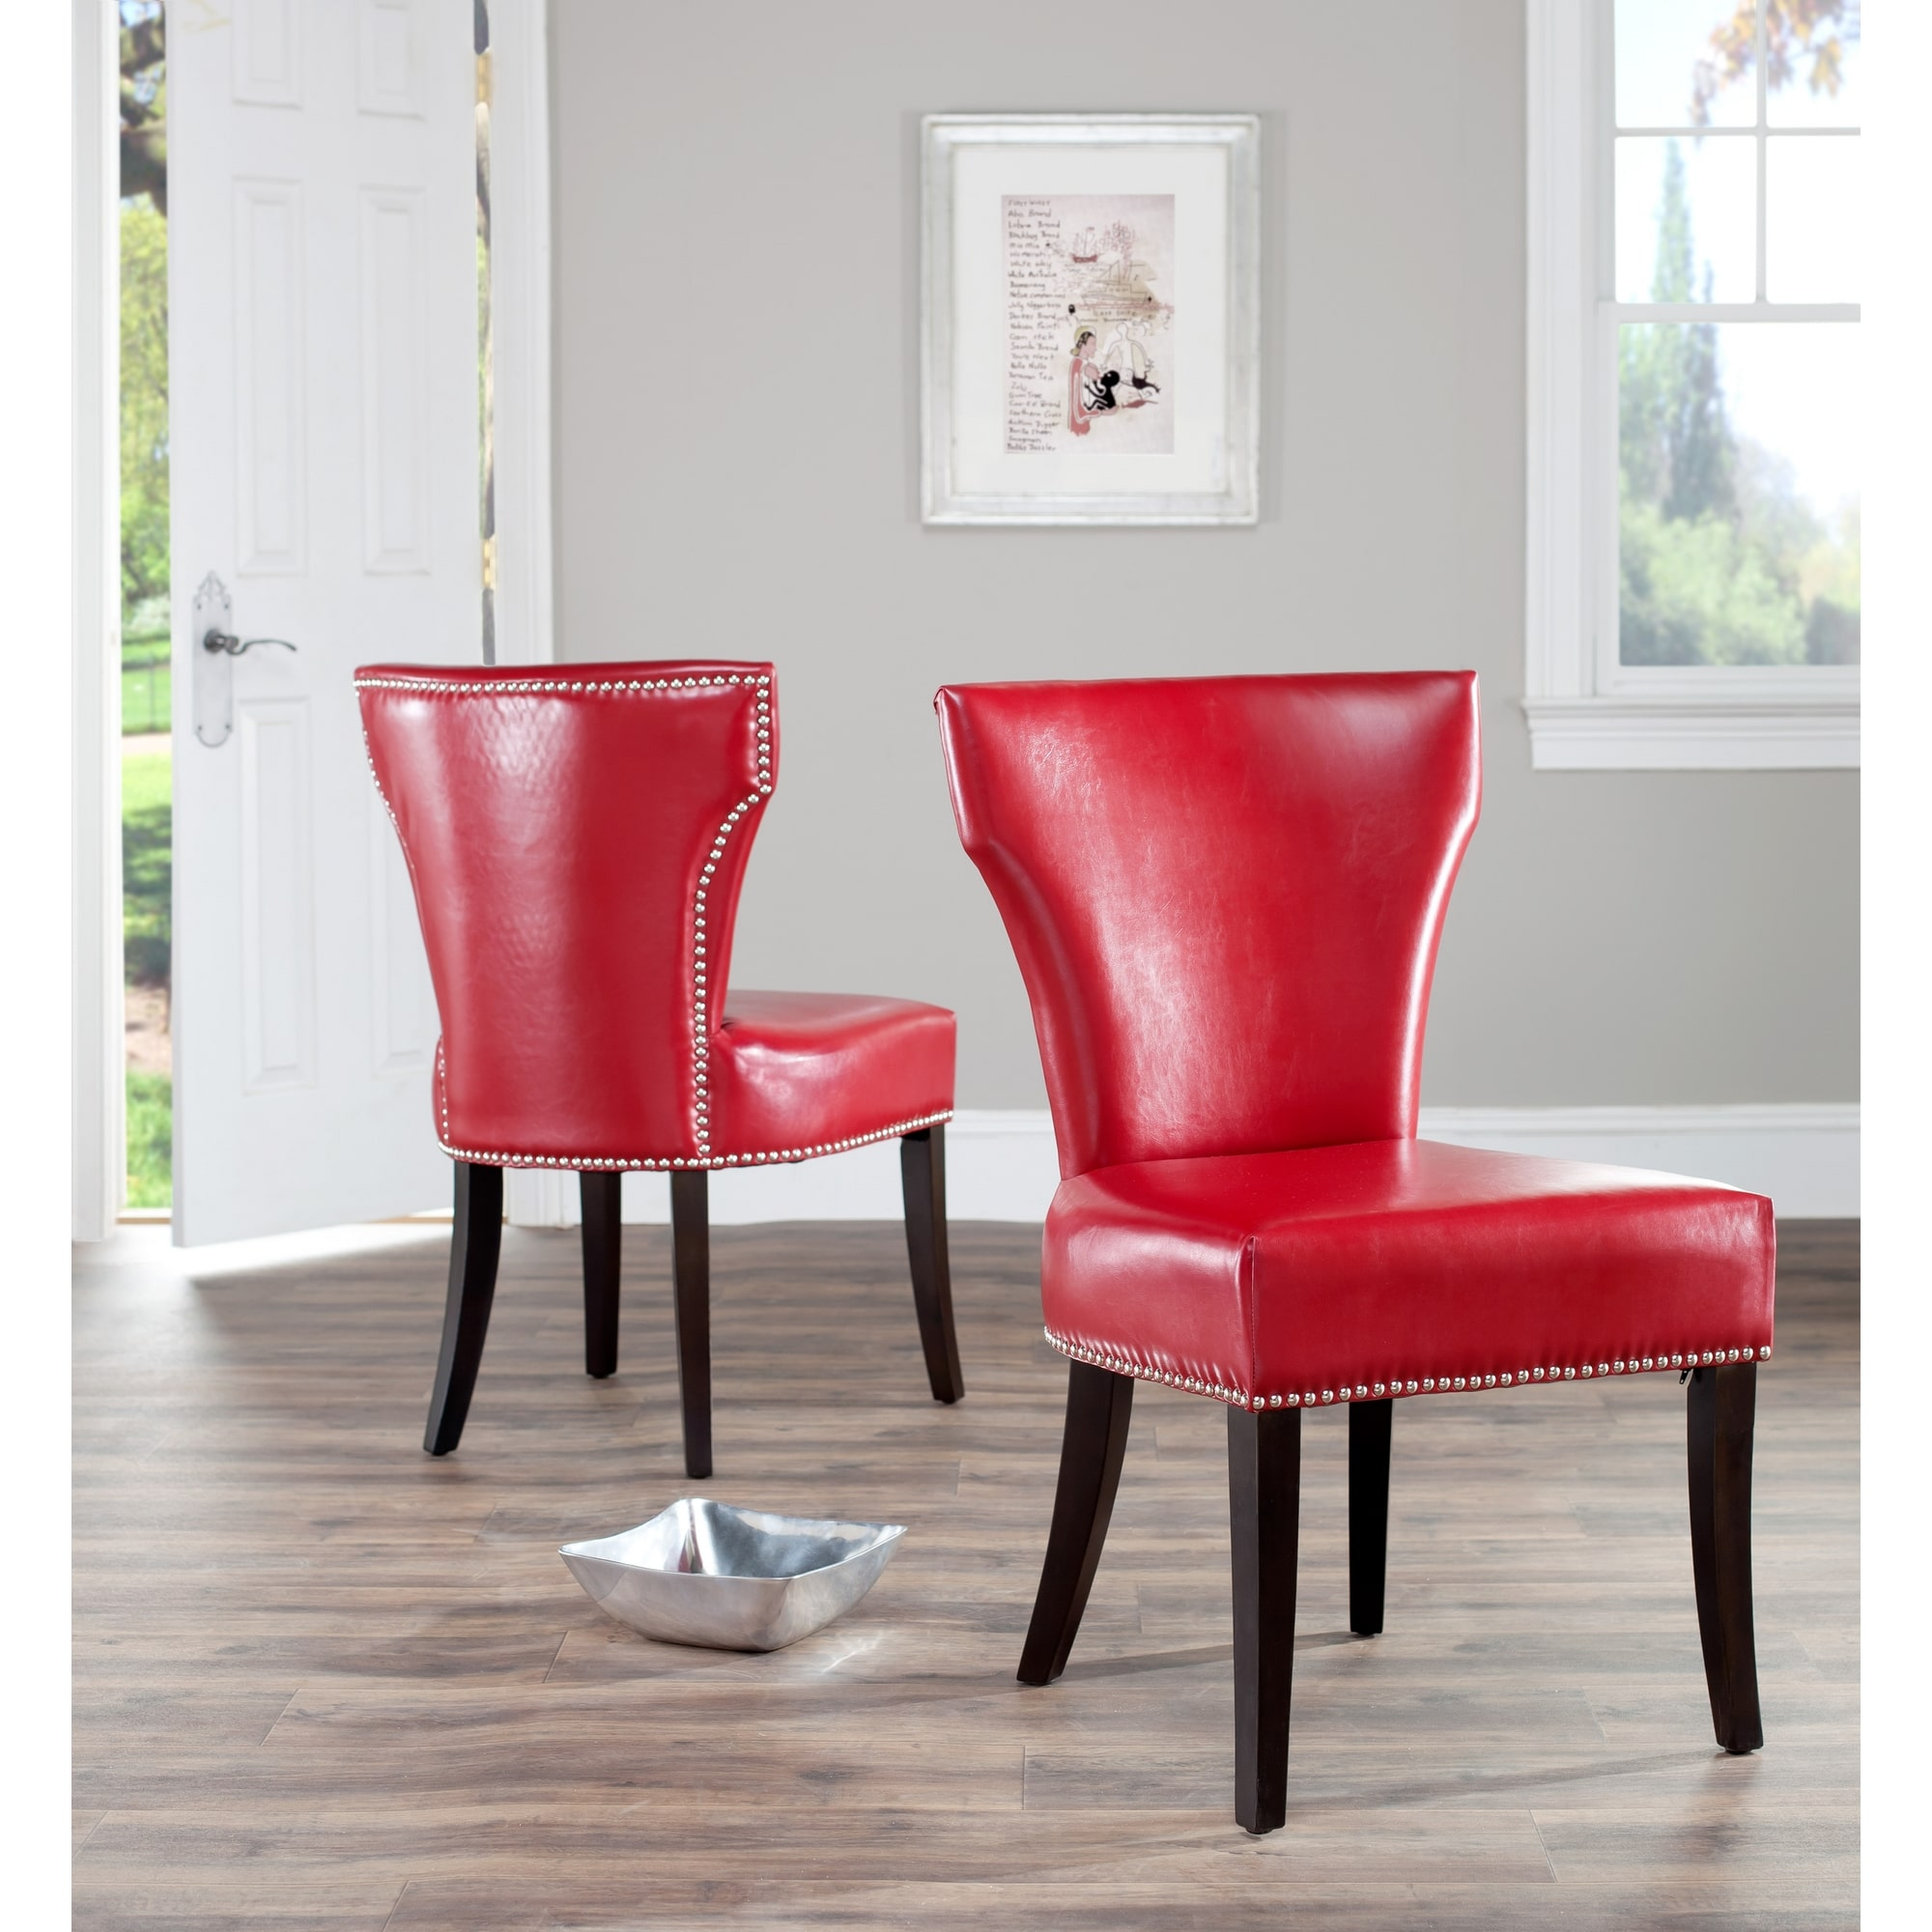 Red Leather Dining Room Chairs Matty Red Leather Nailhead Dining Chairs Set Of 2 Walmart